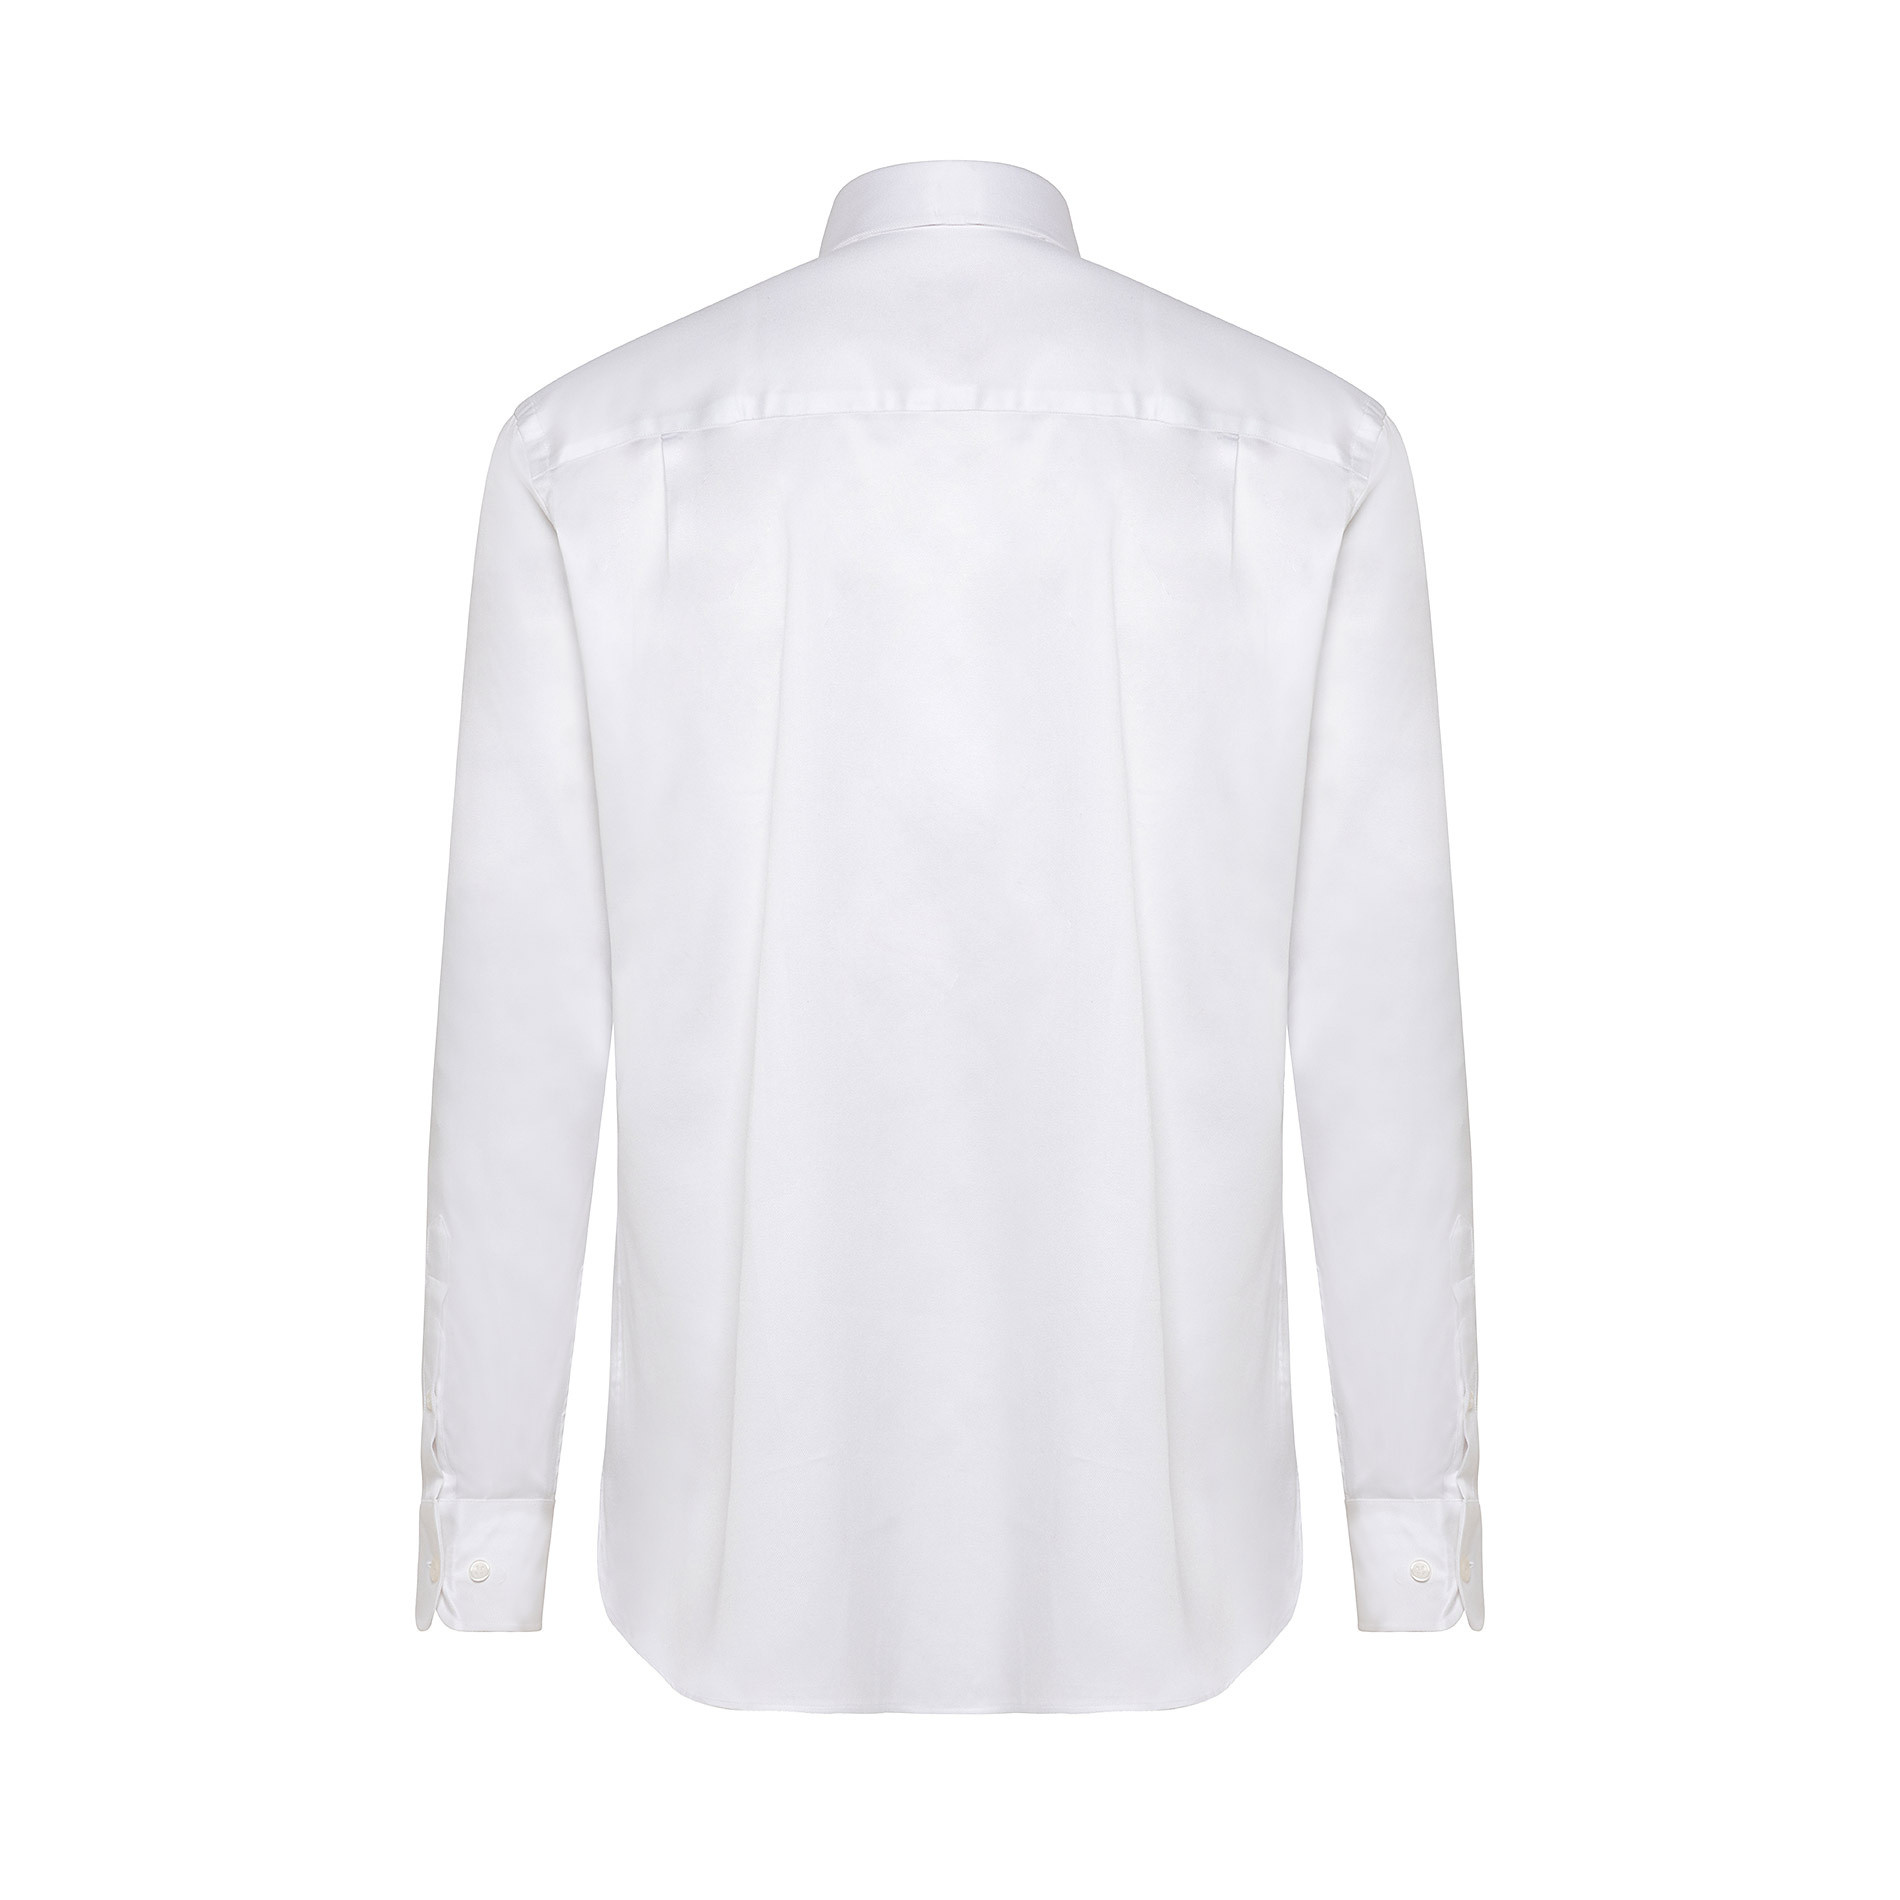 Camicia colletto francese in cotone, Bianco, large image number 1